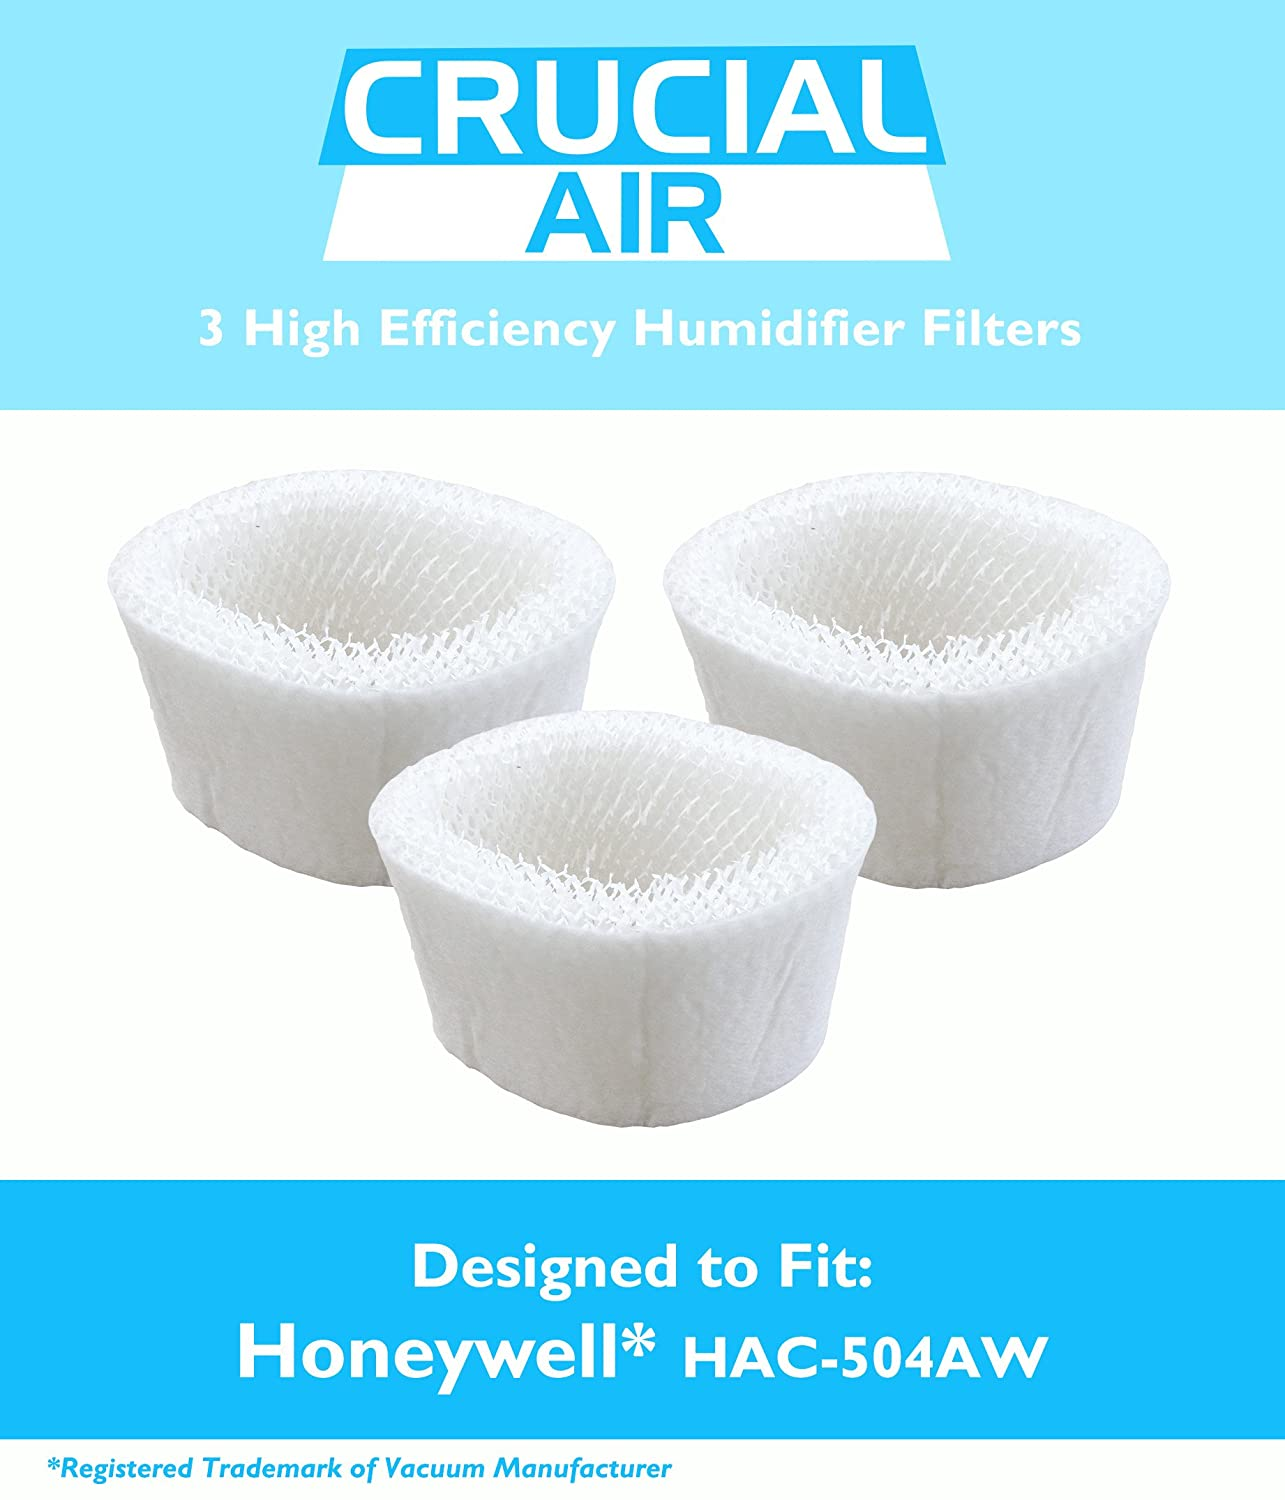 honeywell hcm 300t quietcare uv tower humidifier 3 gallon amazon 3 honeywell hac 504aw humidifier filter fits honeywell hcm 600 hcm